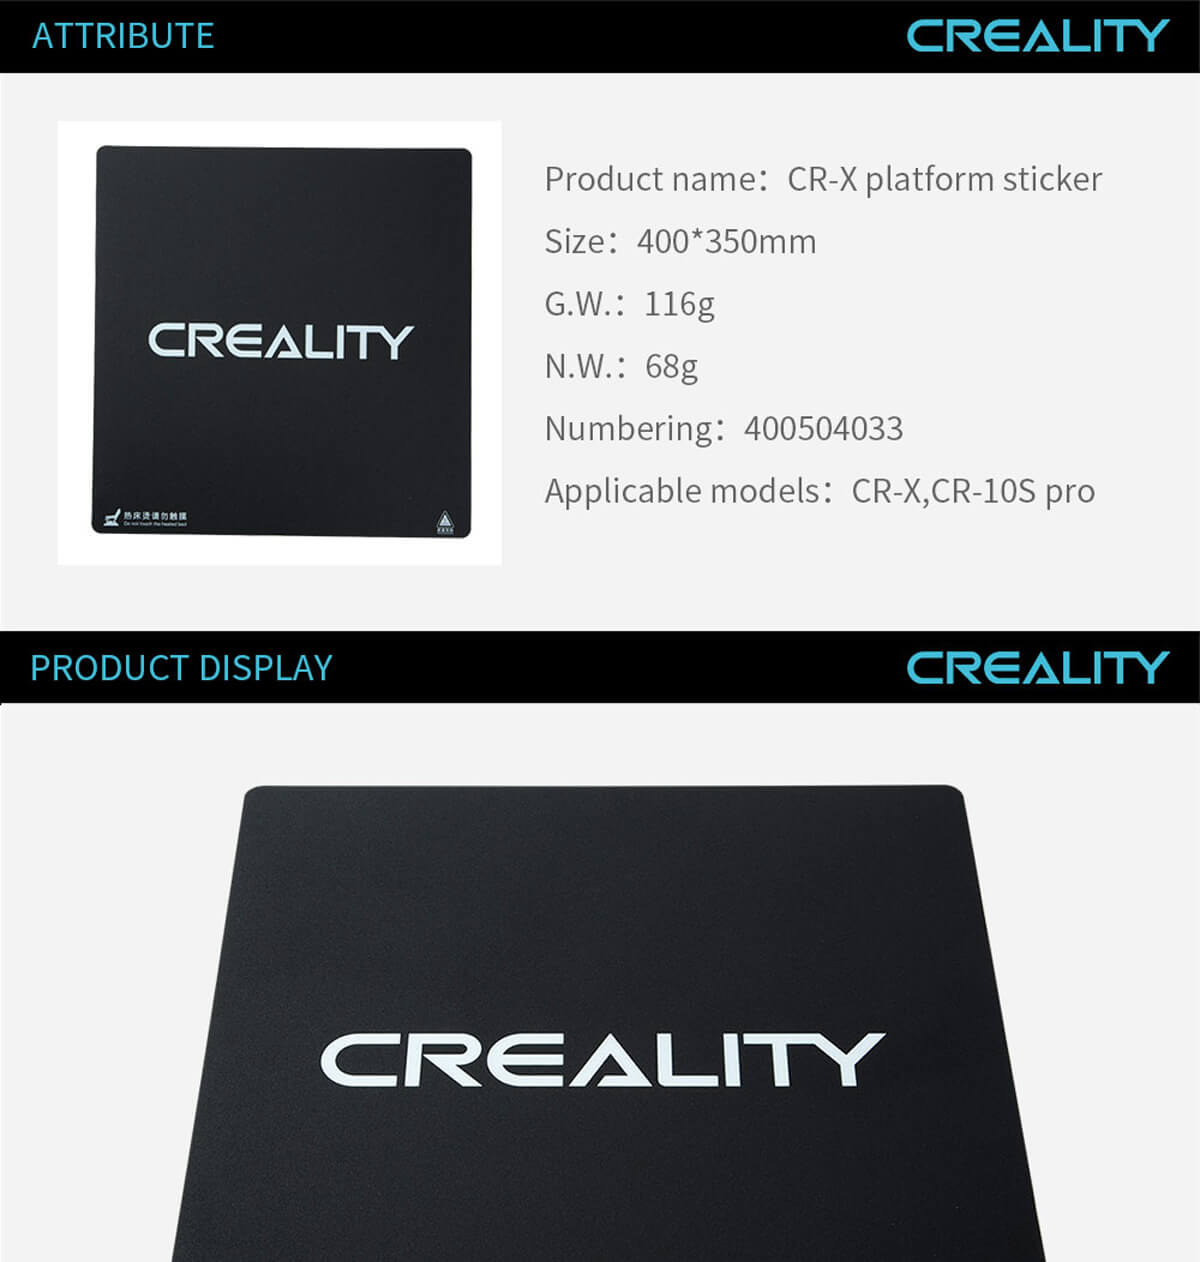 creality-3d-printer-CR-X-Platform-Sticker-11